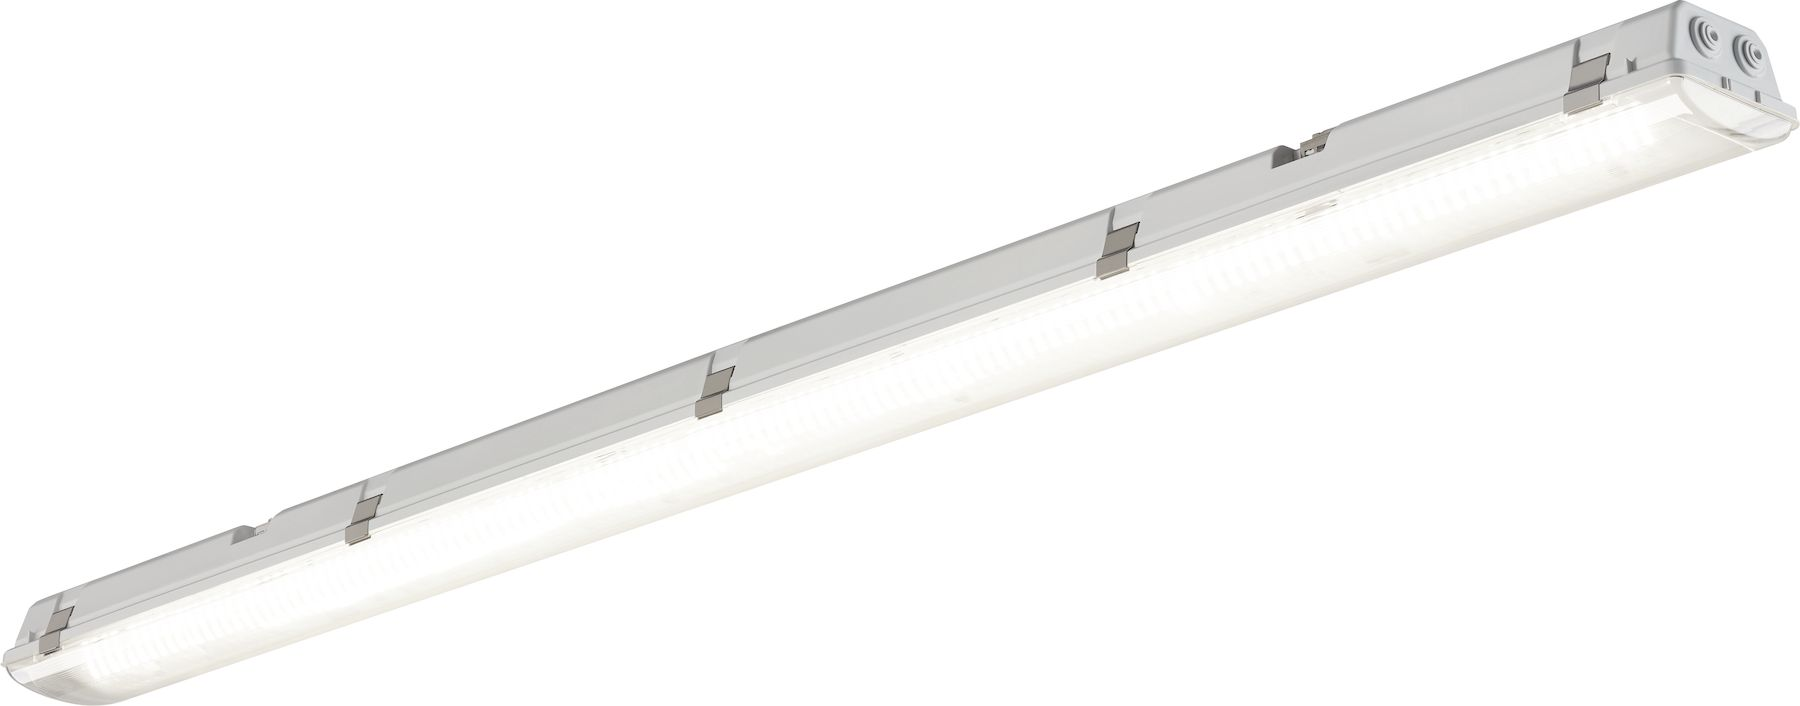 LED-teollisuusvalaisin Sylvania Start Waterproof 1500 mm 58 W 4000 K IP65